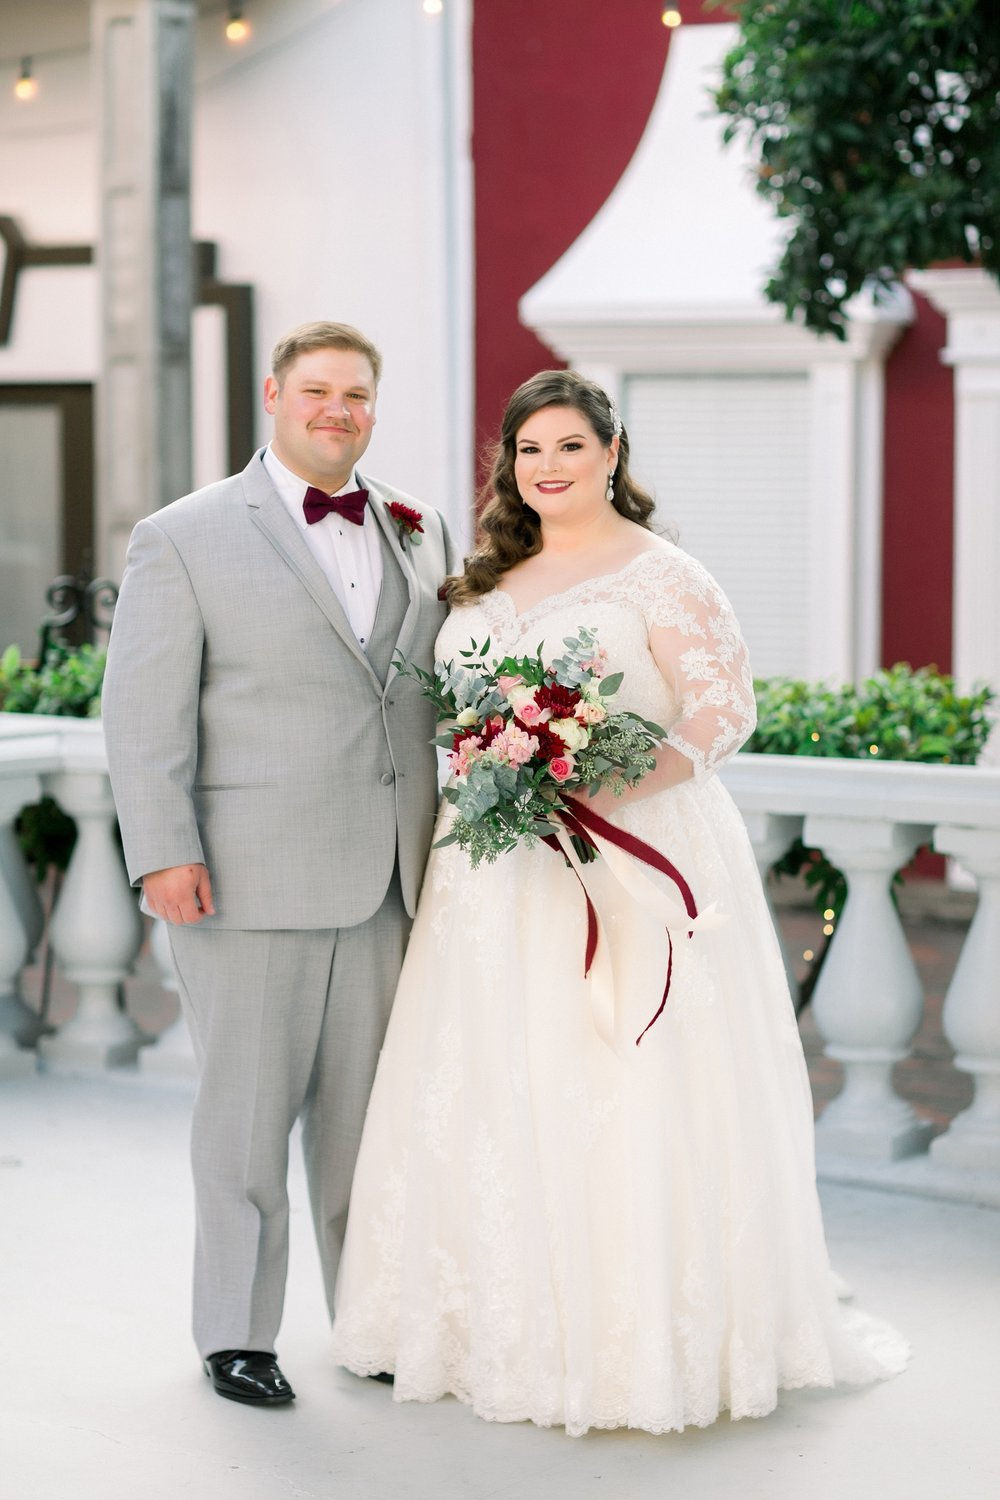 gaslight-at-courtyard-square-corpus-christi-wedding-omni-hotel-fall-winter-wedding-texas-wedding-photographer-lauren-pinson-0043.jpg